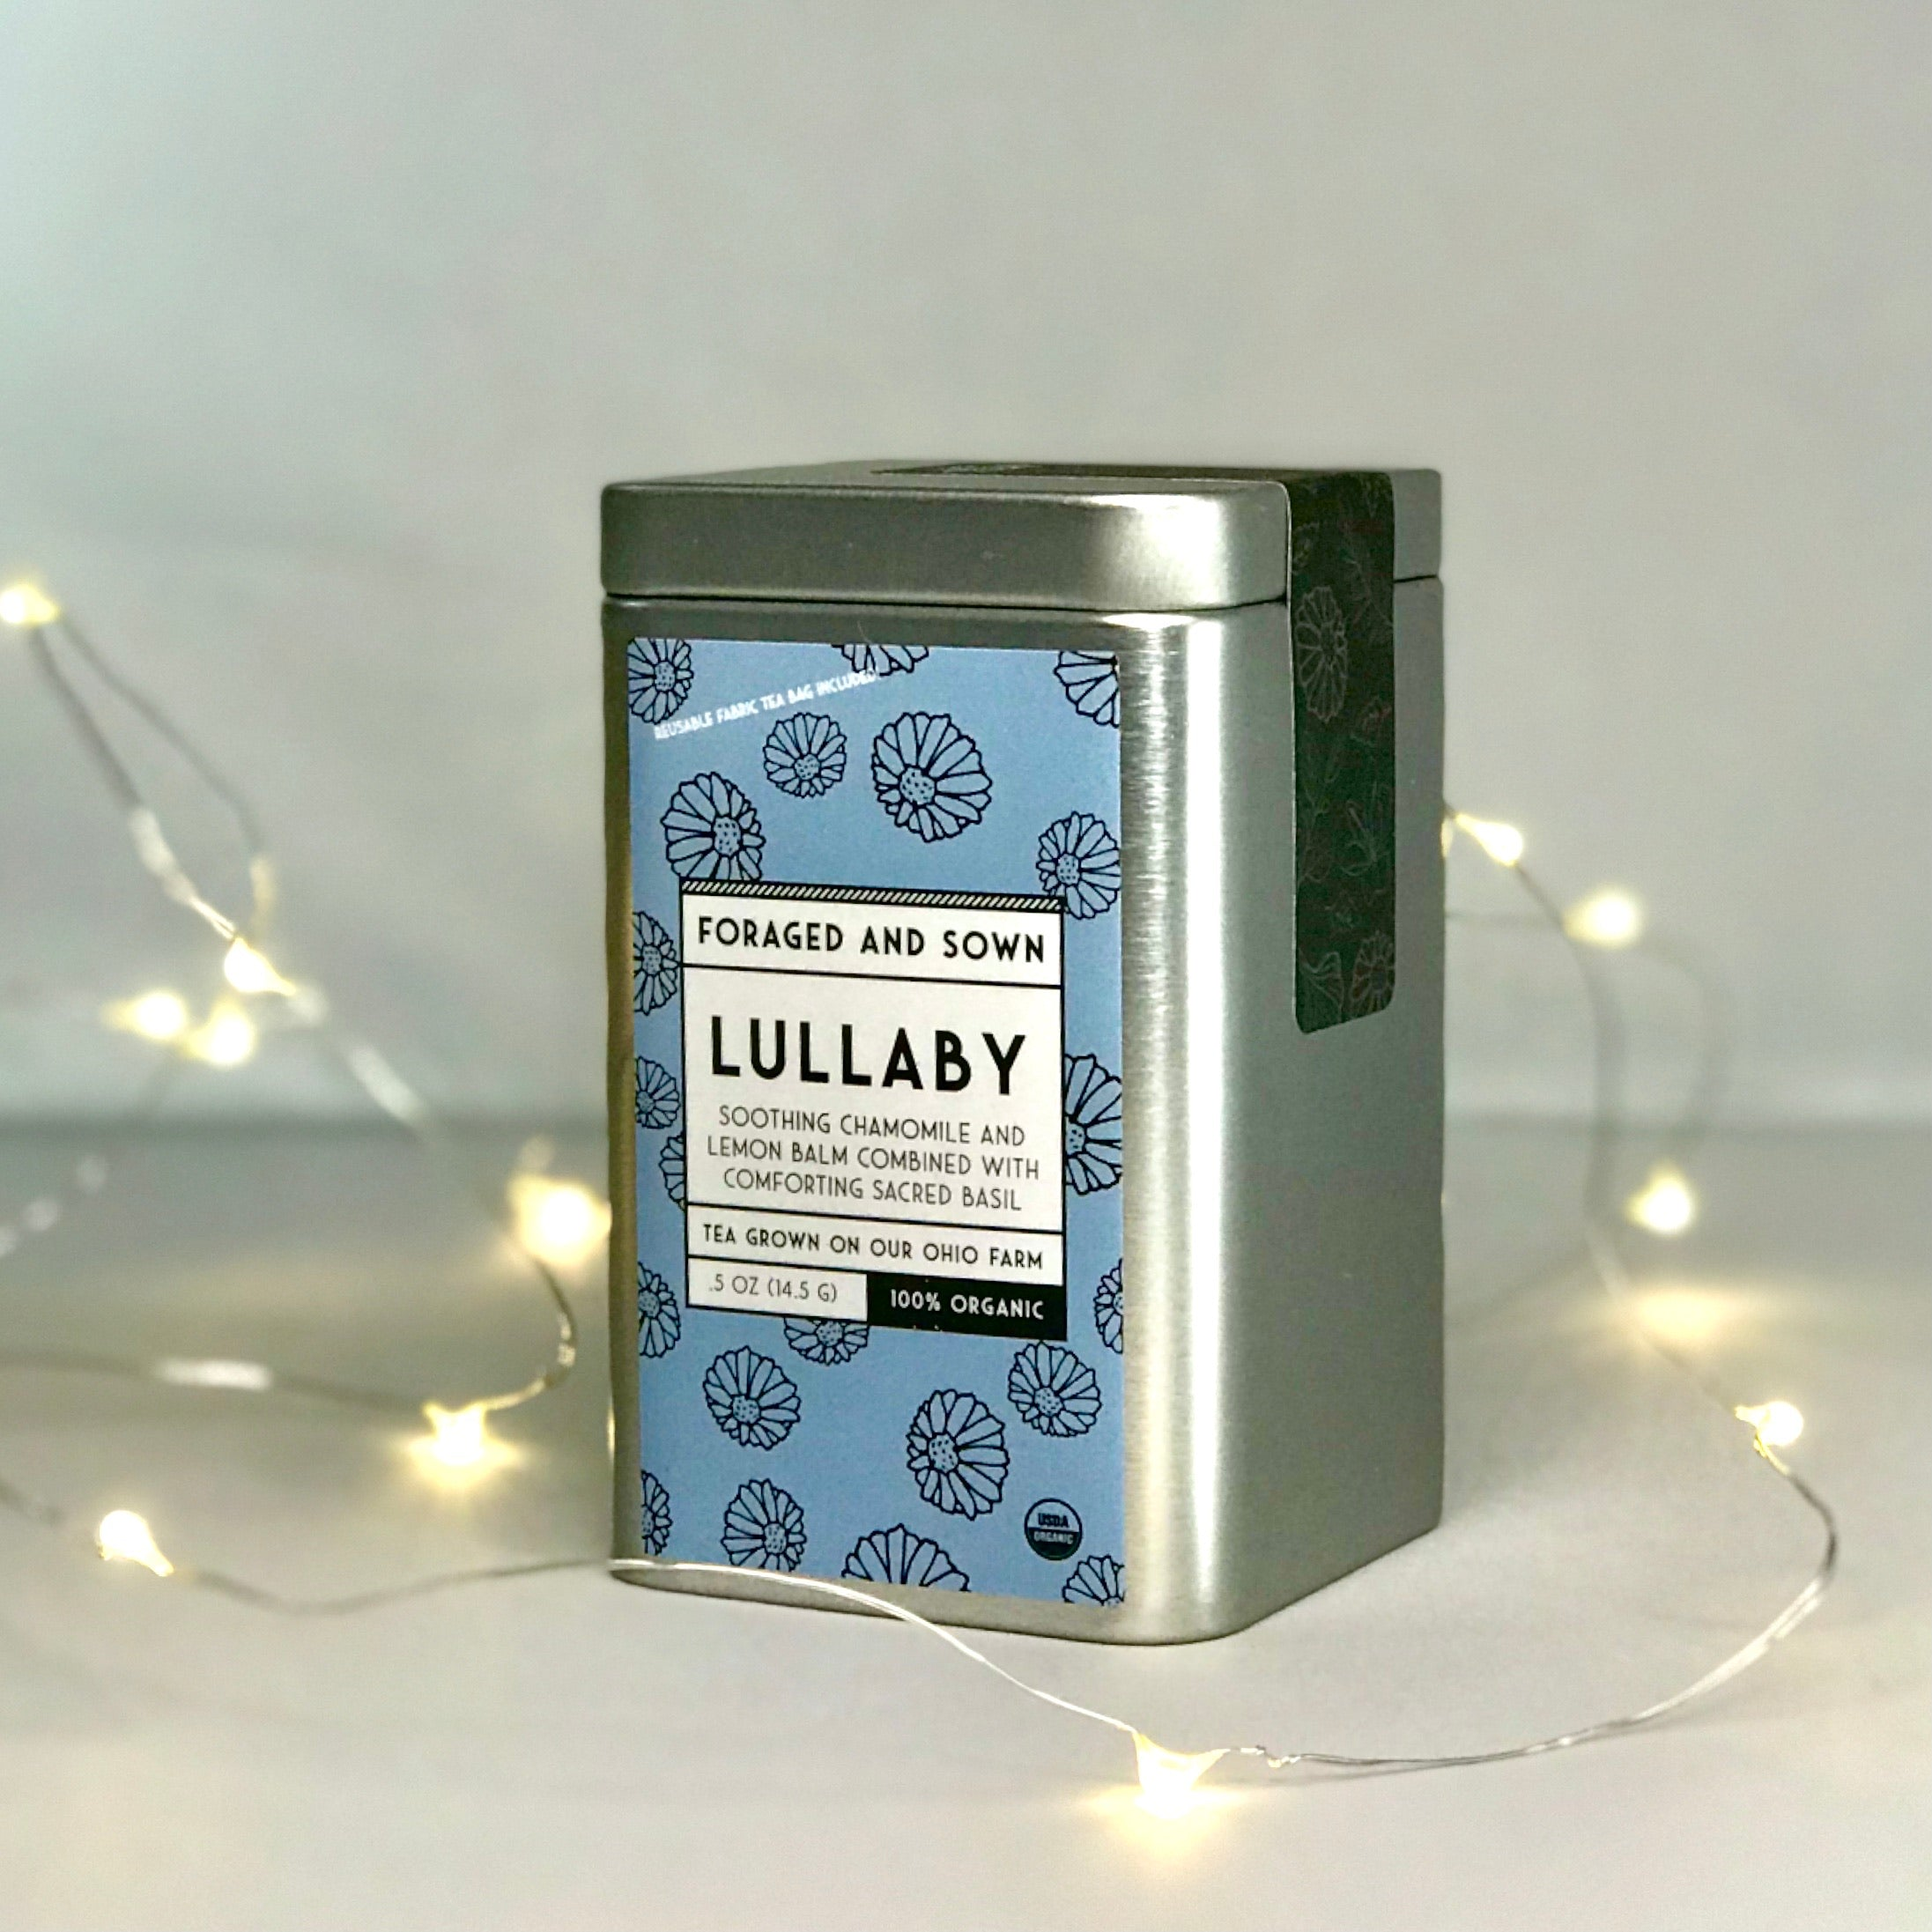 Lullaby Herbal Tea